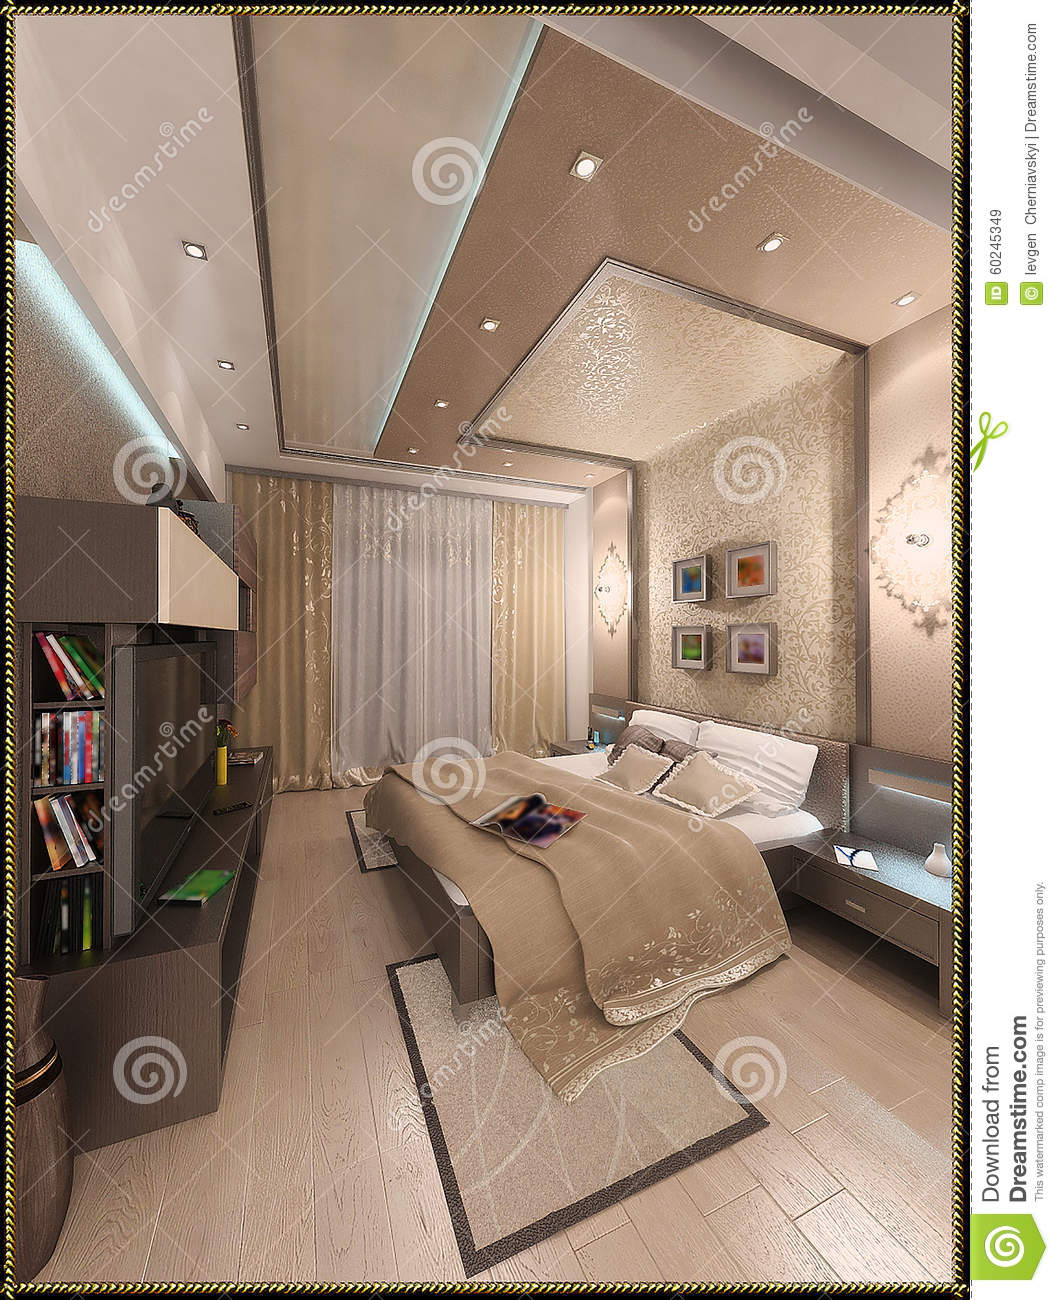 Bedroom Design Ideas Interior Modern Render